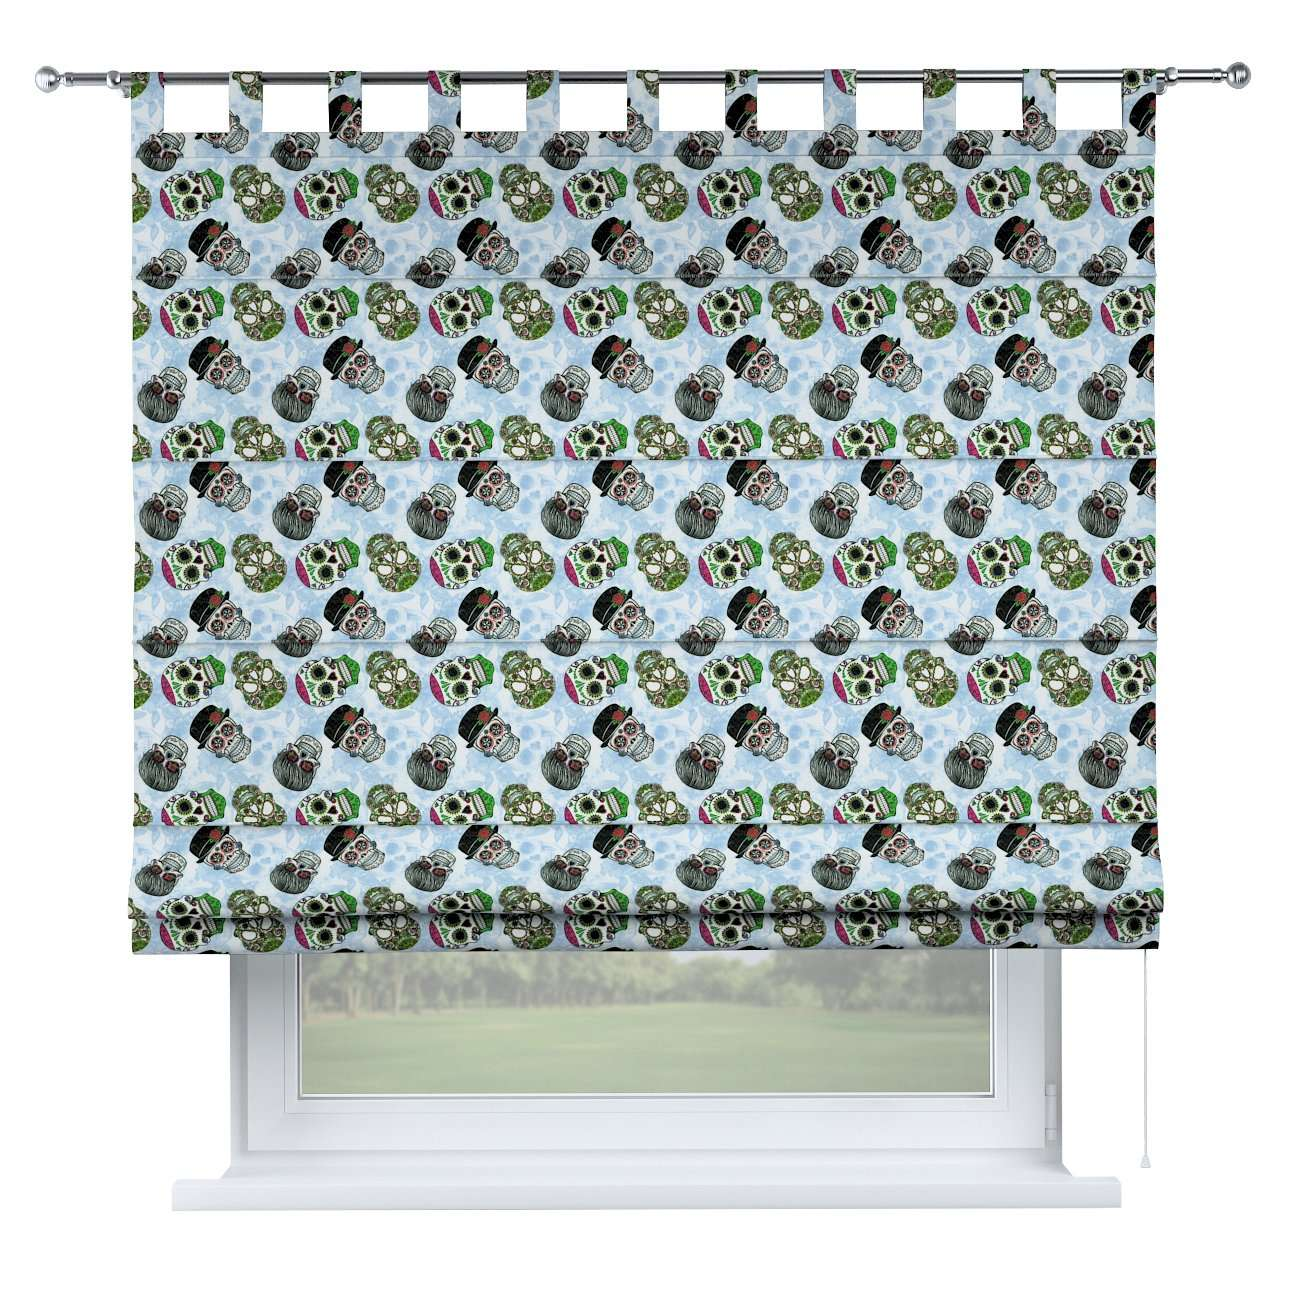 Verona tab top roman blind 80 x 170 cm (31.5 x 67 inch) in collection Freestyle, fabric: 141-01